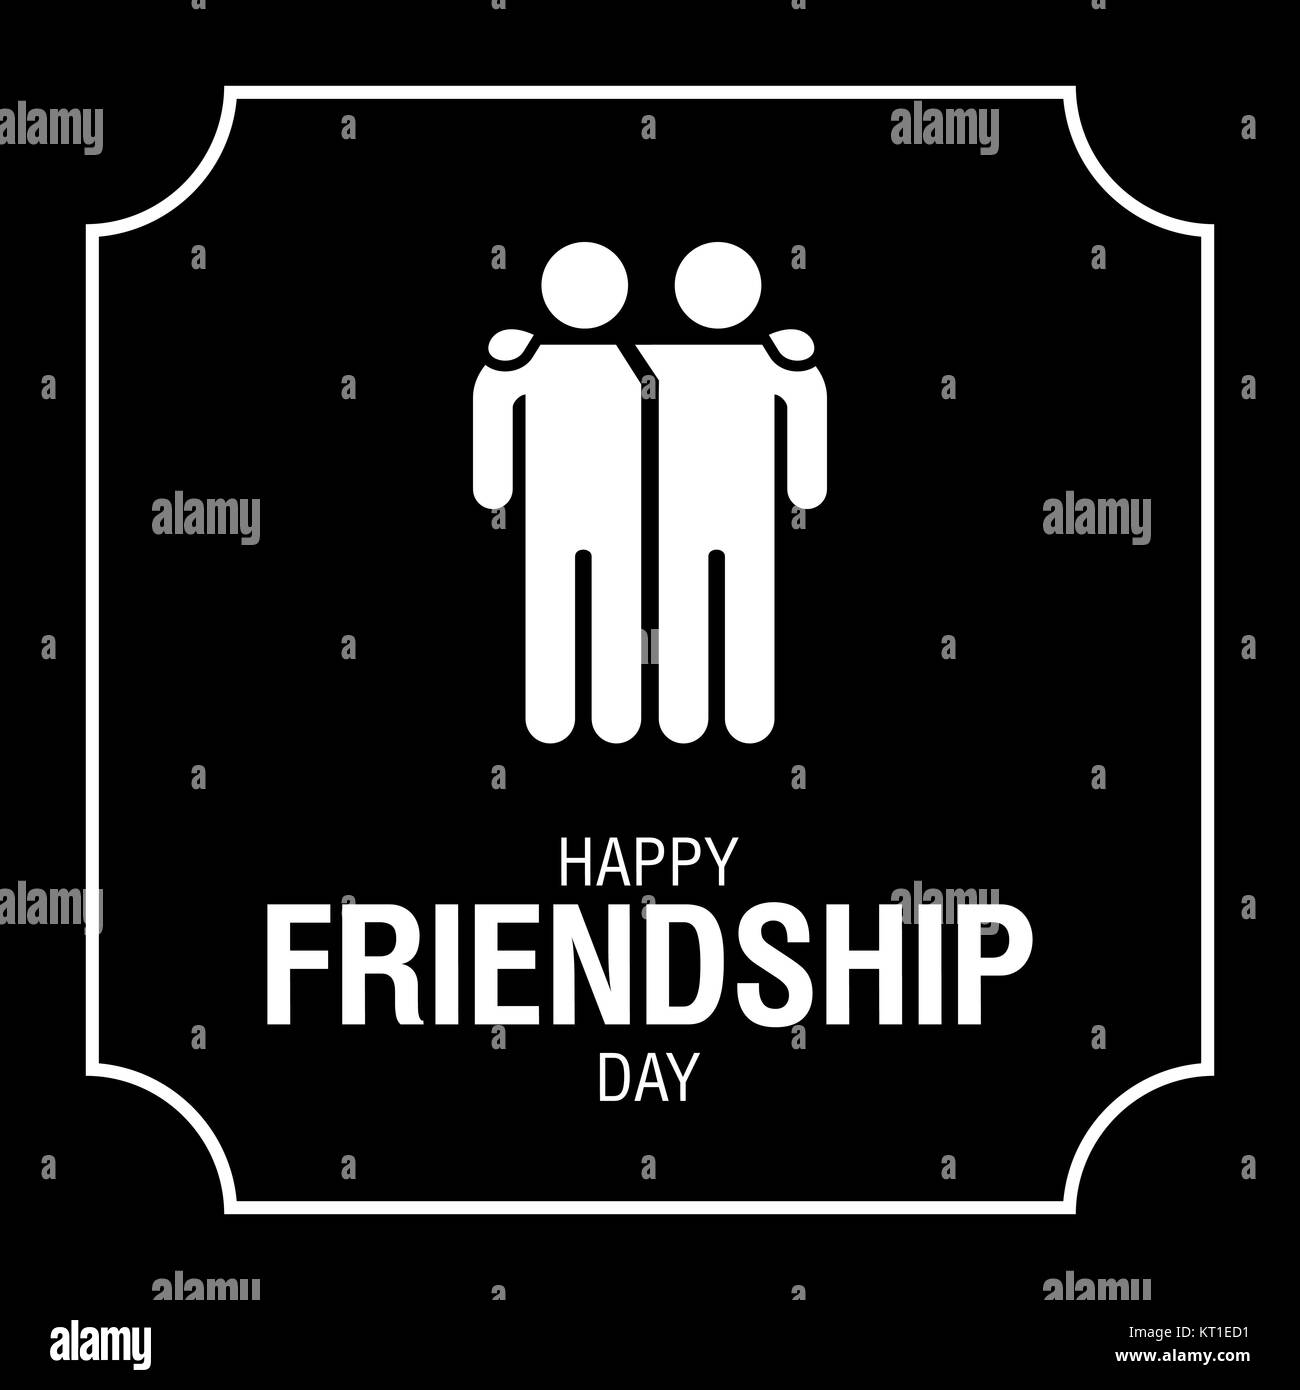 how to make a simple greeting card for friendship day